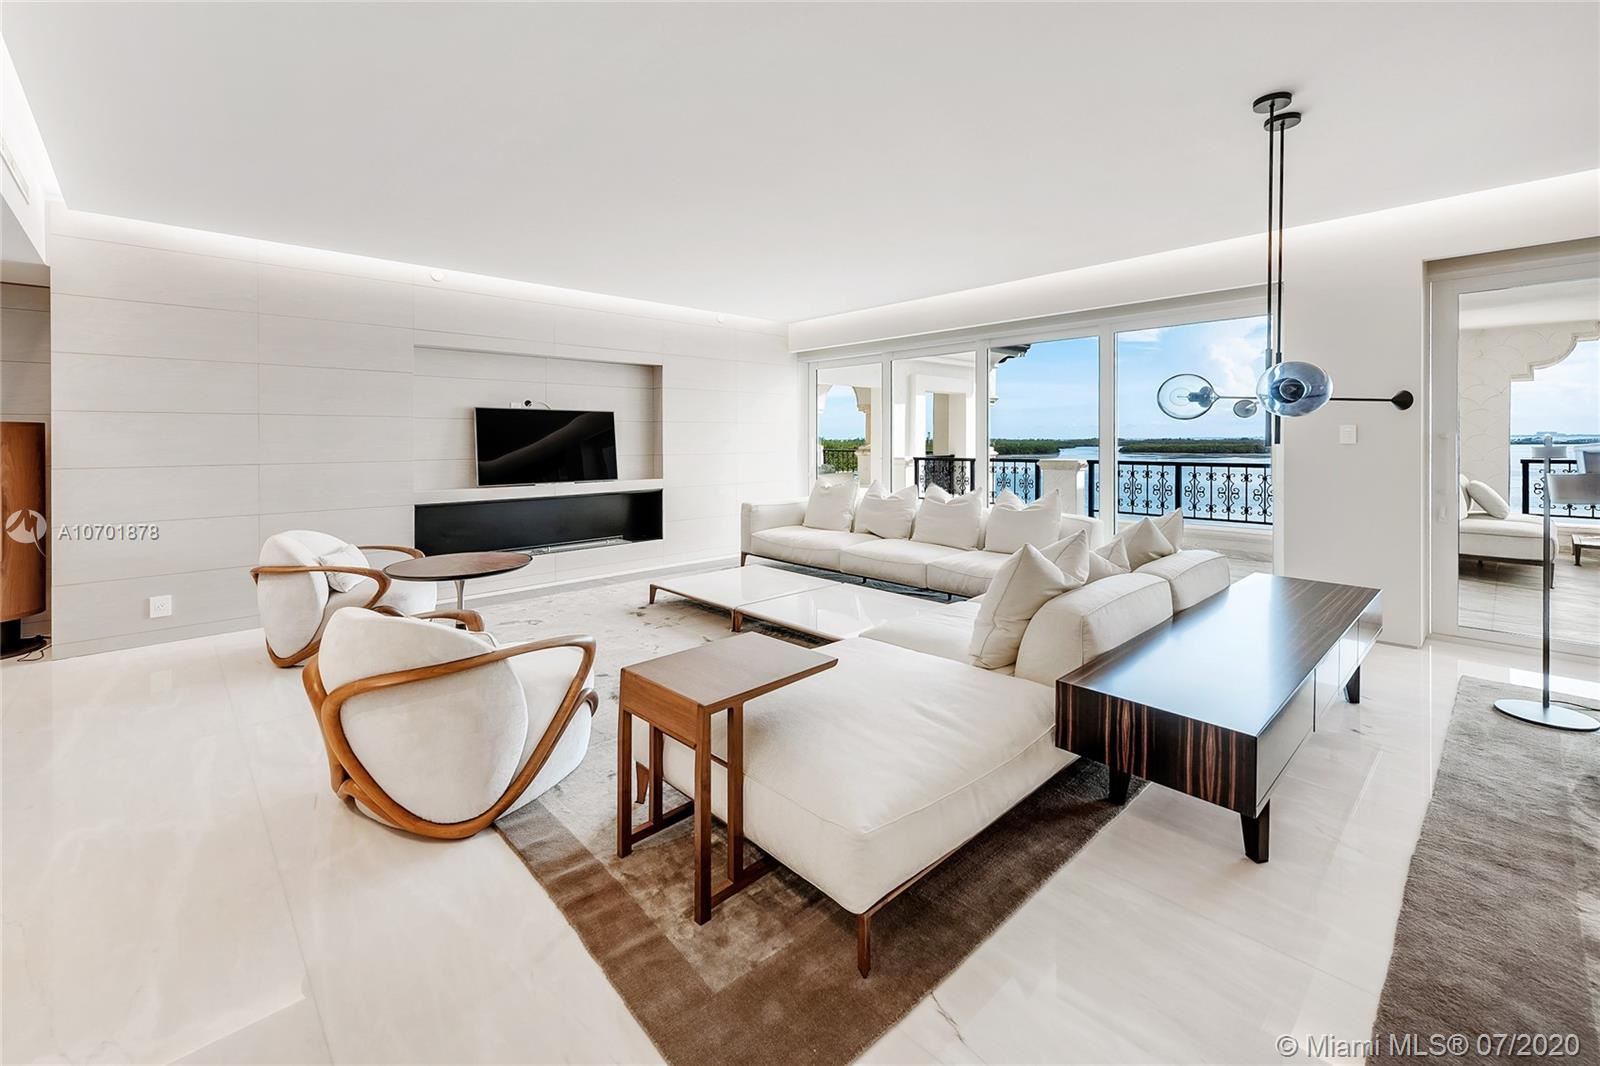 Photo 10 of Listing MLS a10701878 in 5292 Fisher Island Dr #5292 Miami FL 33109